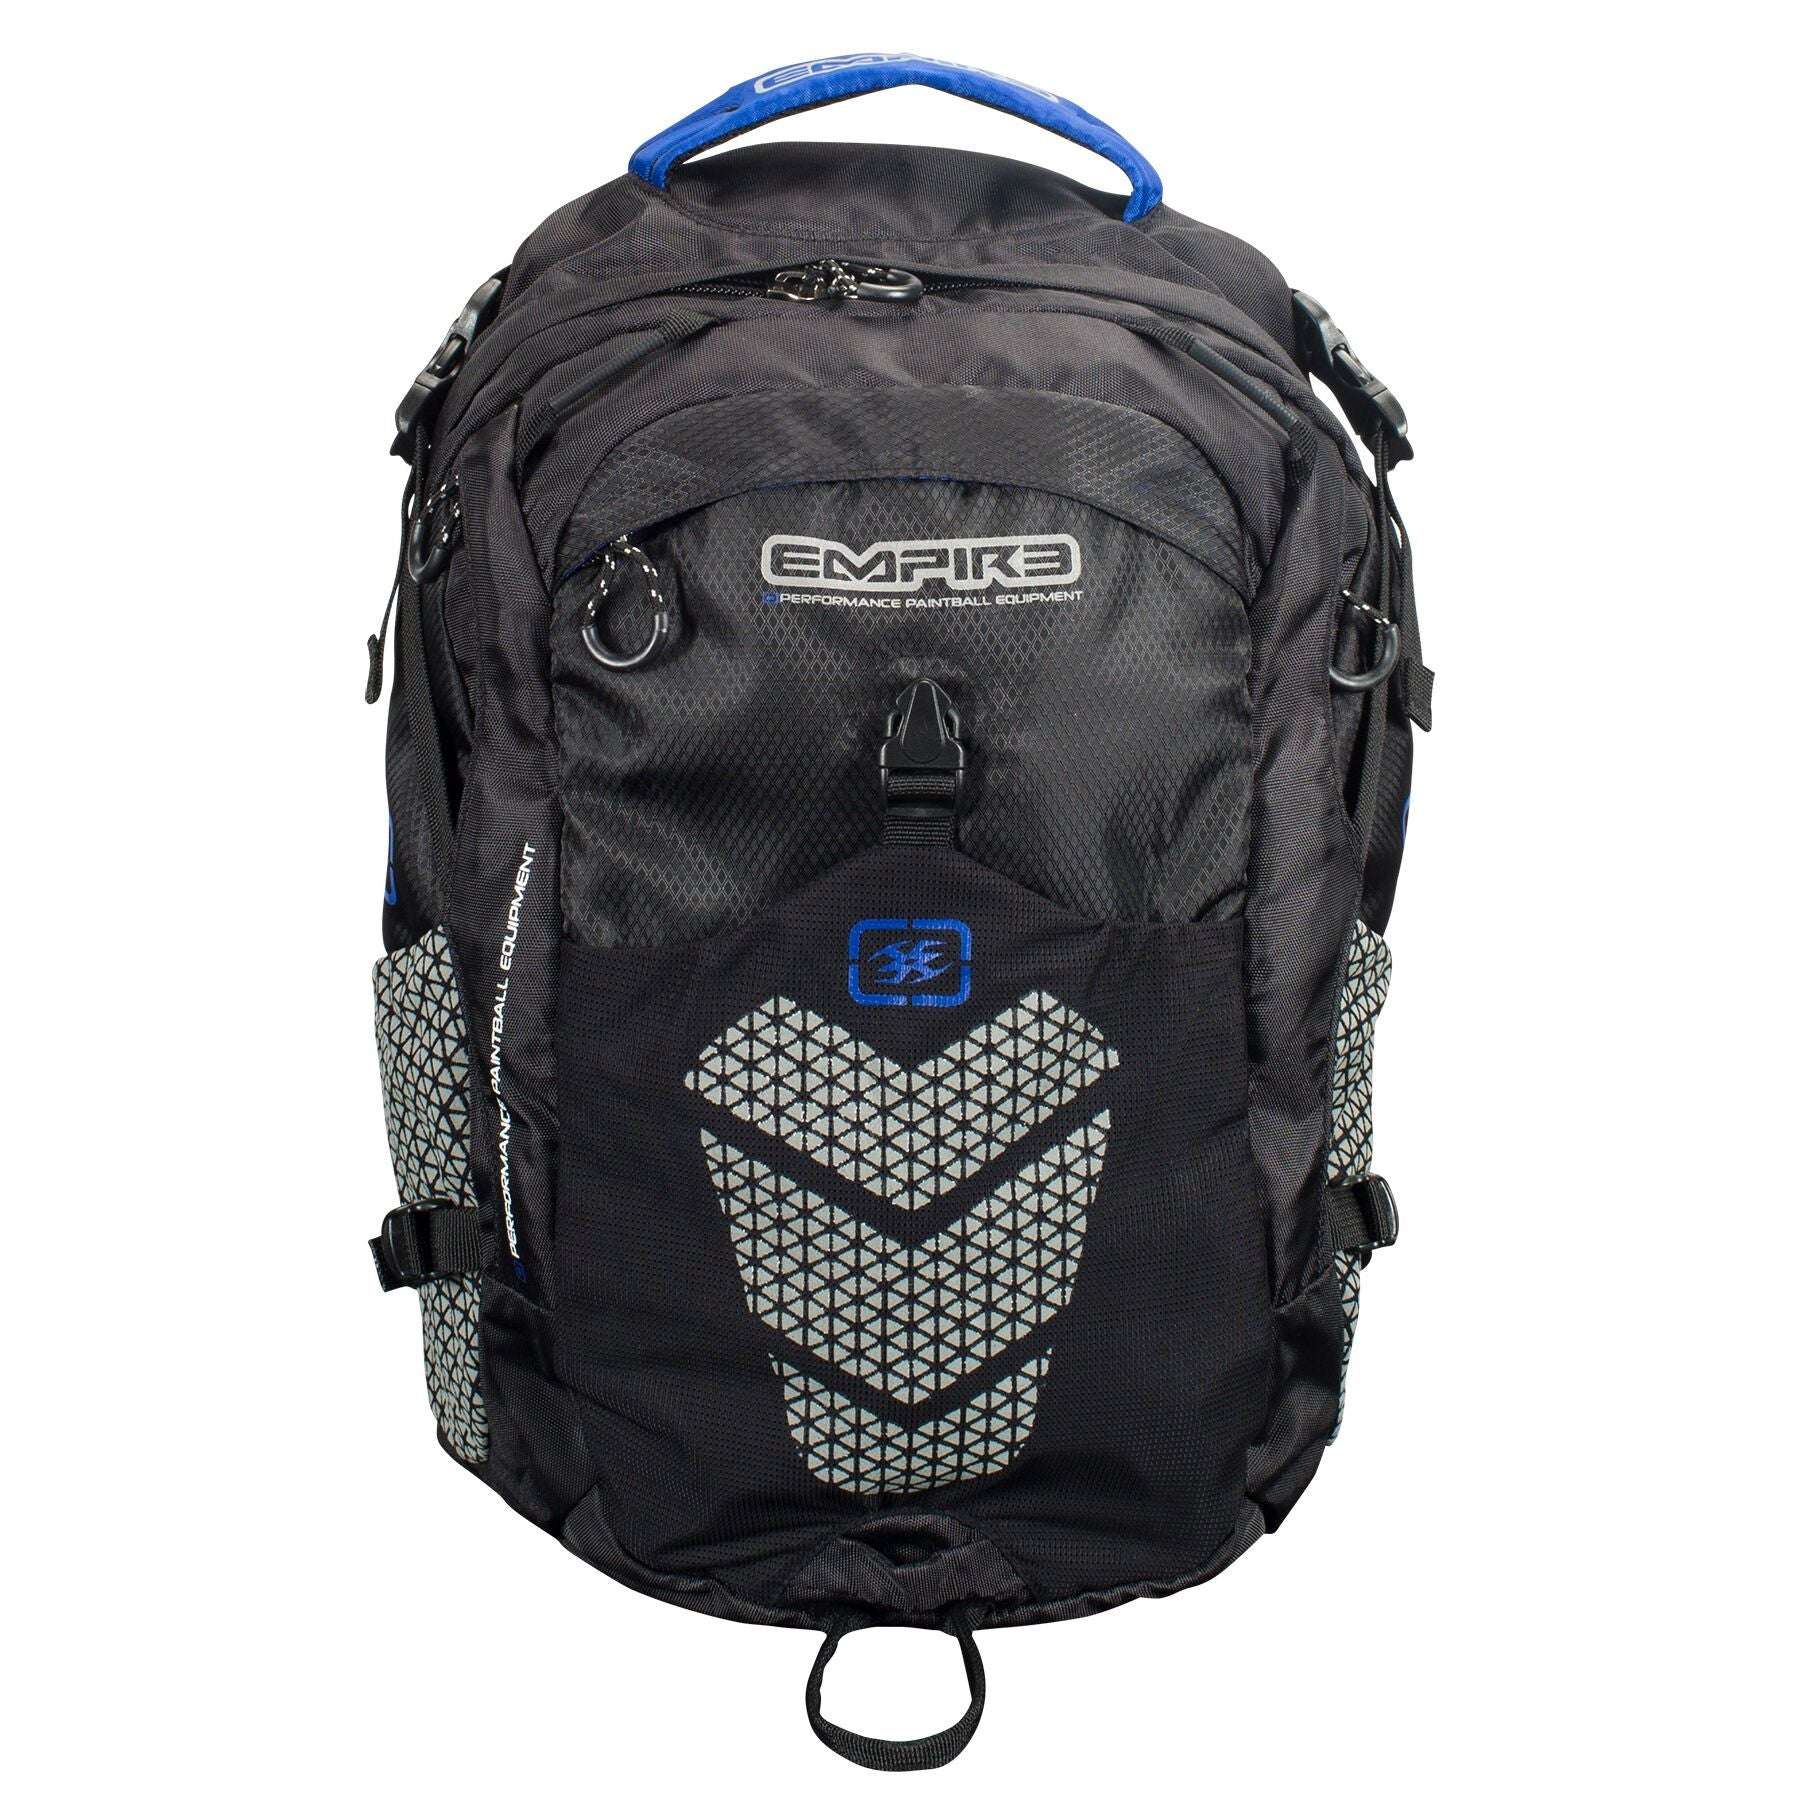 Photos of Empire Paintball Backpack F6. Photo taken by drpaintball.com